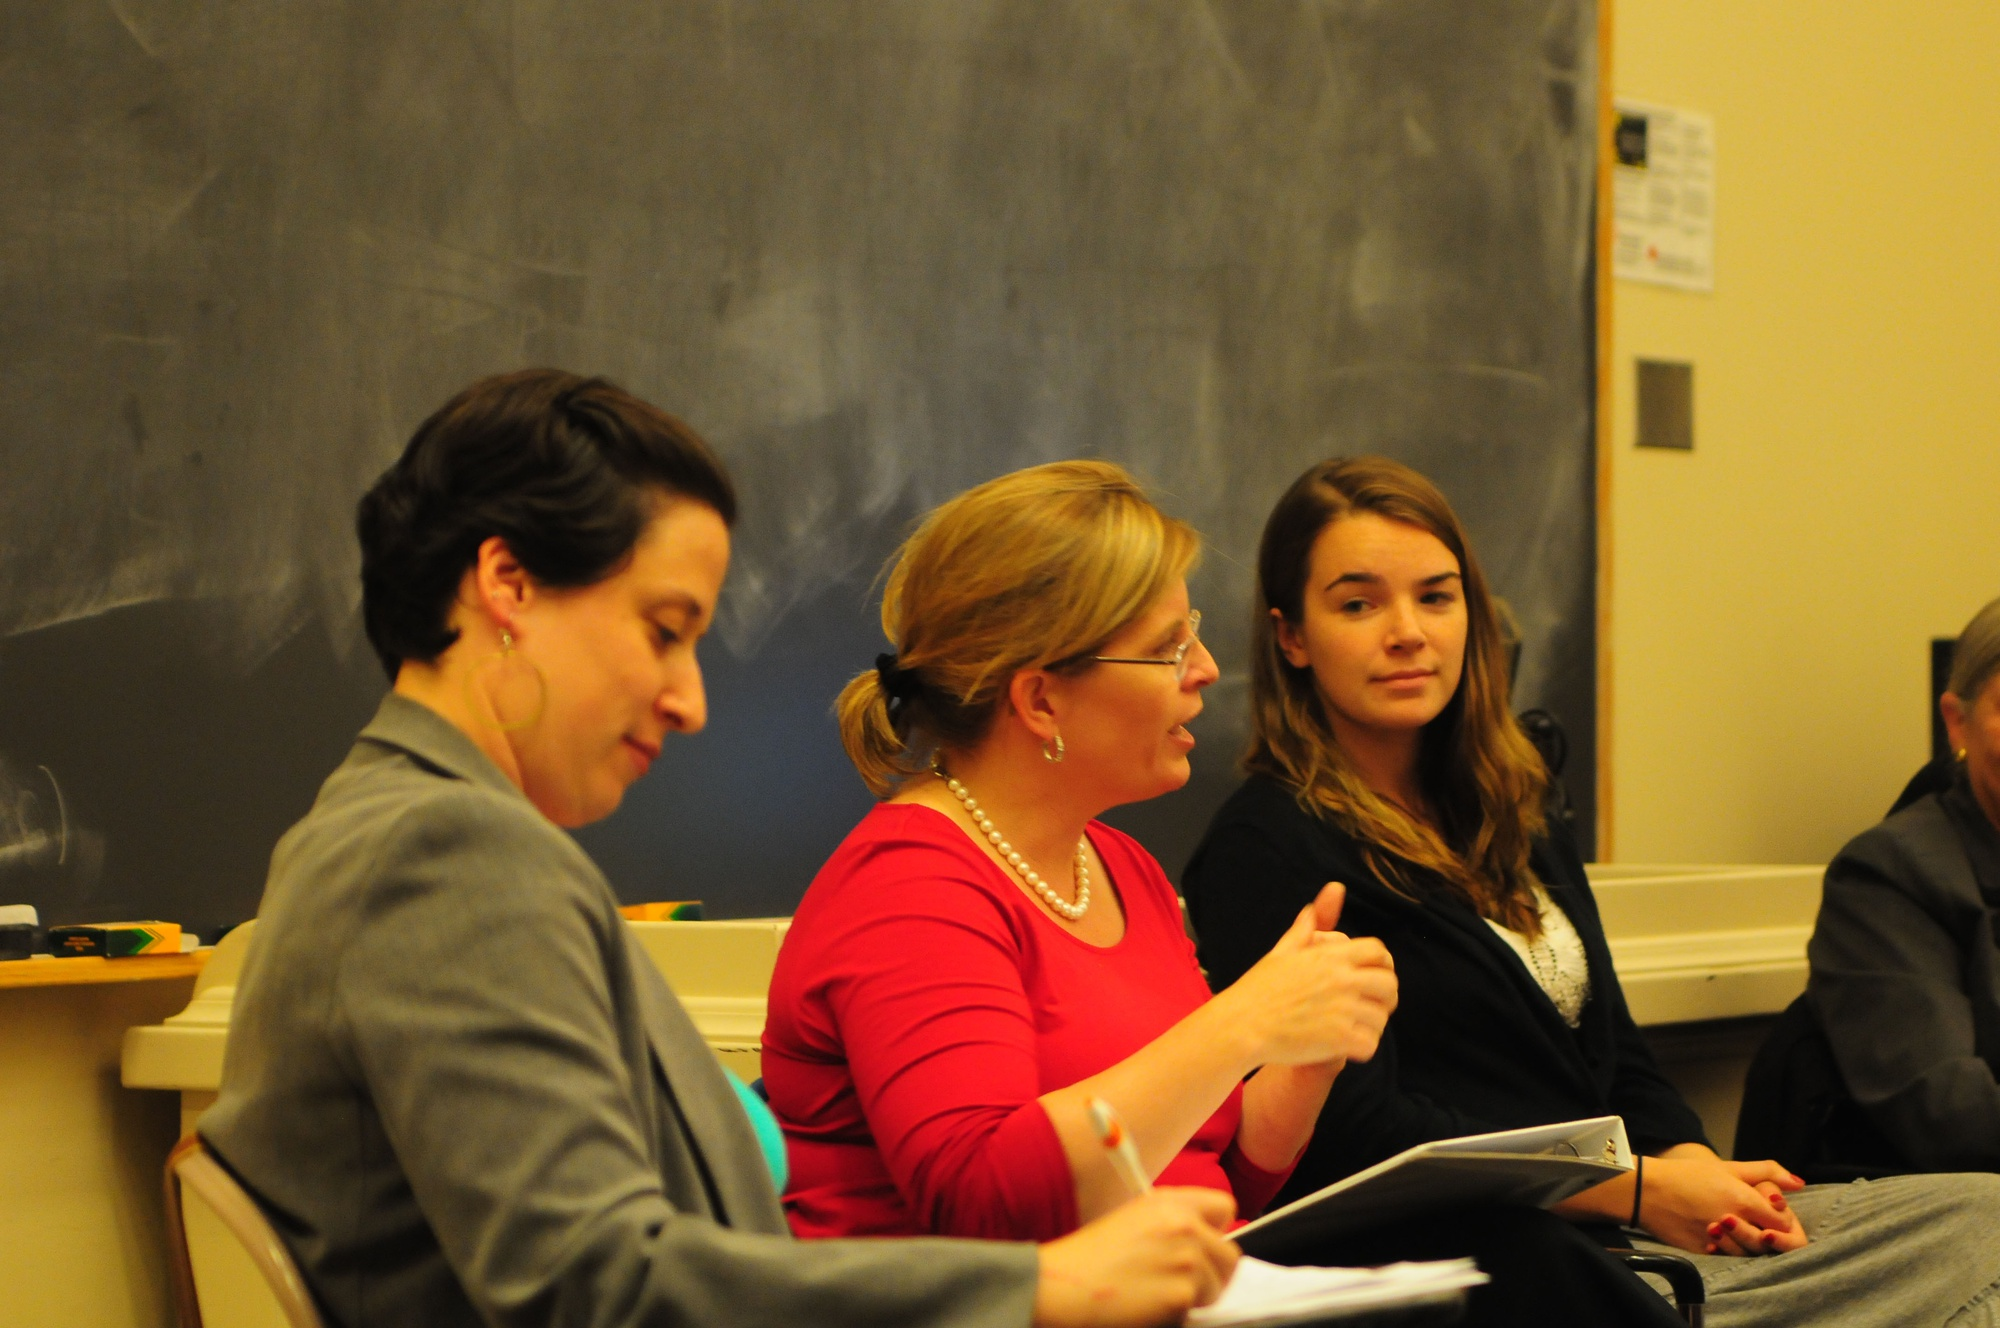 The Harvard Dems and the Women's Center presents a panel discussion featuring Rep. Marjorie Decker, Professor Kay Scholozman, and others about what their experience in the political workplace.